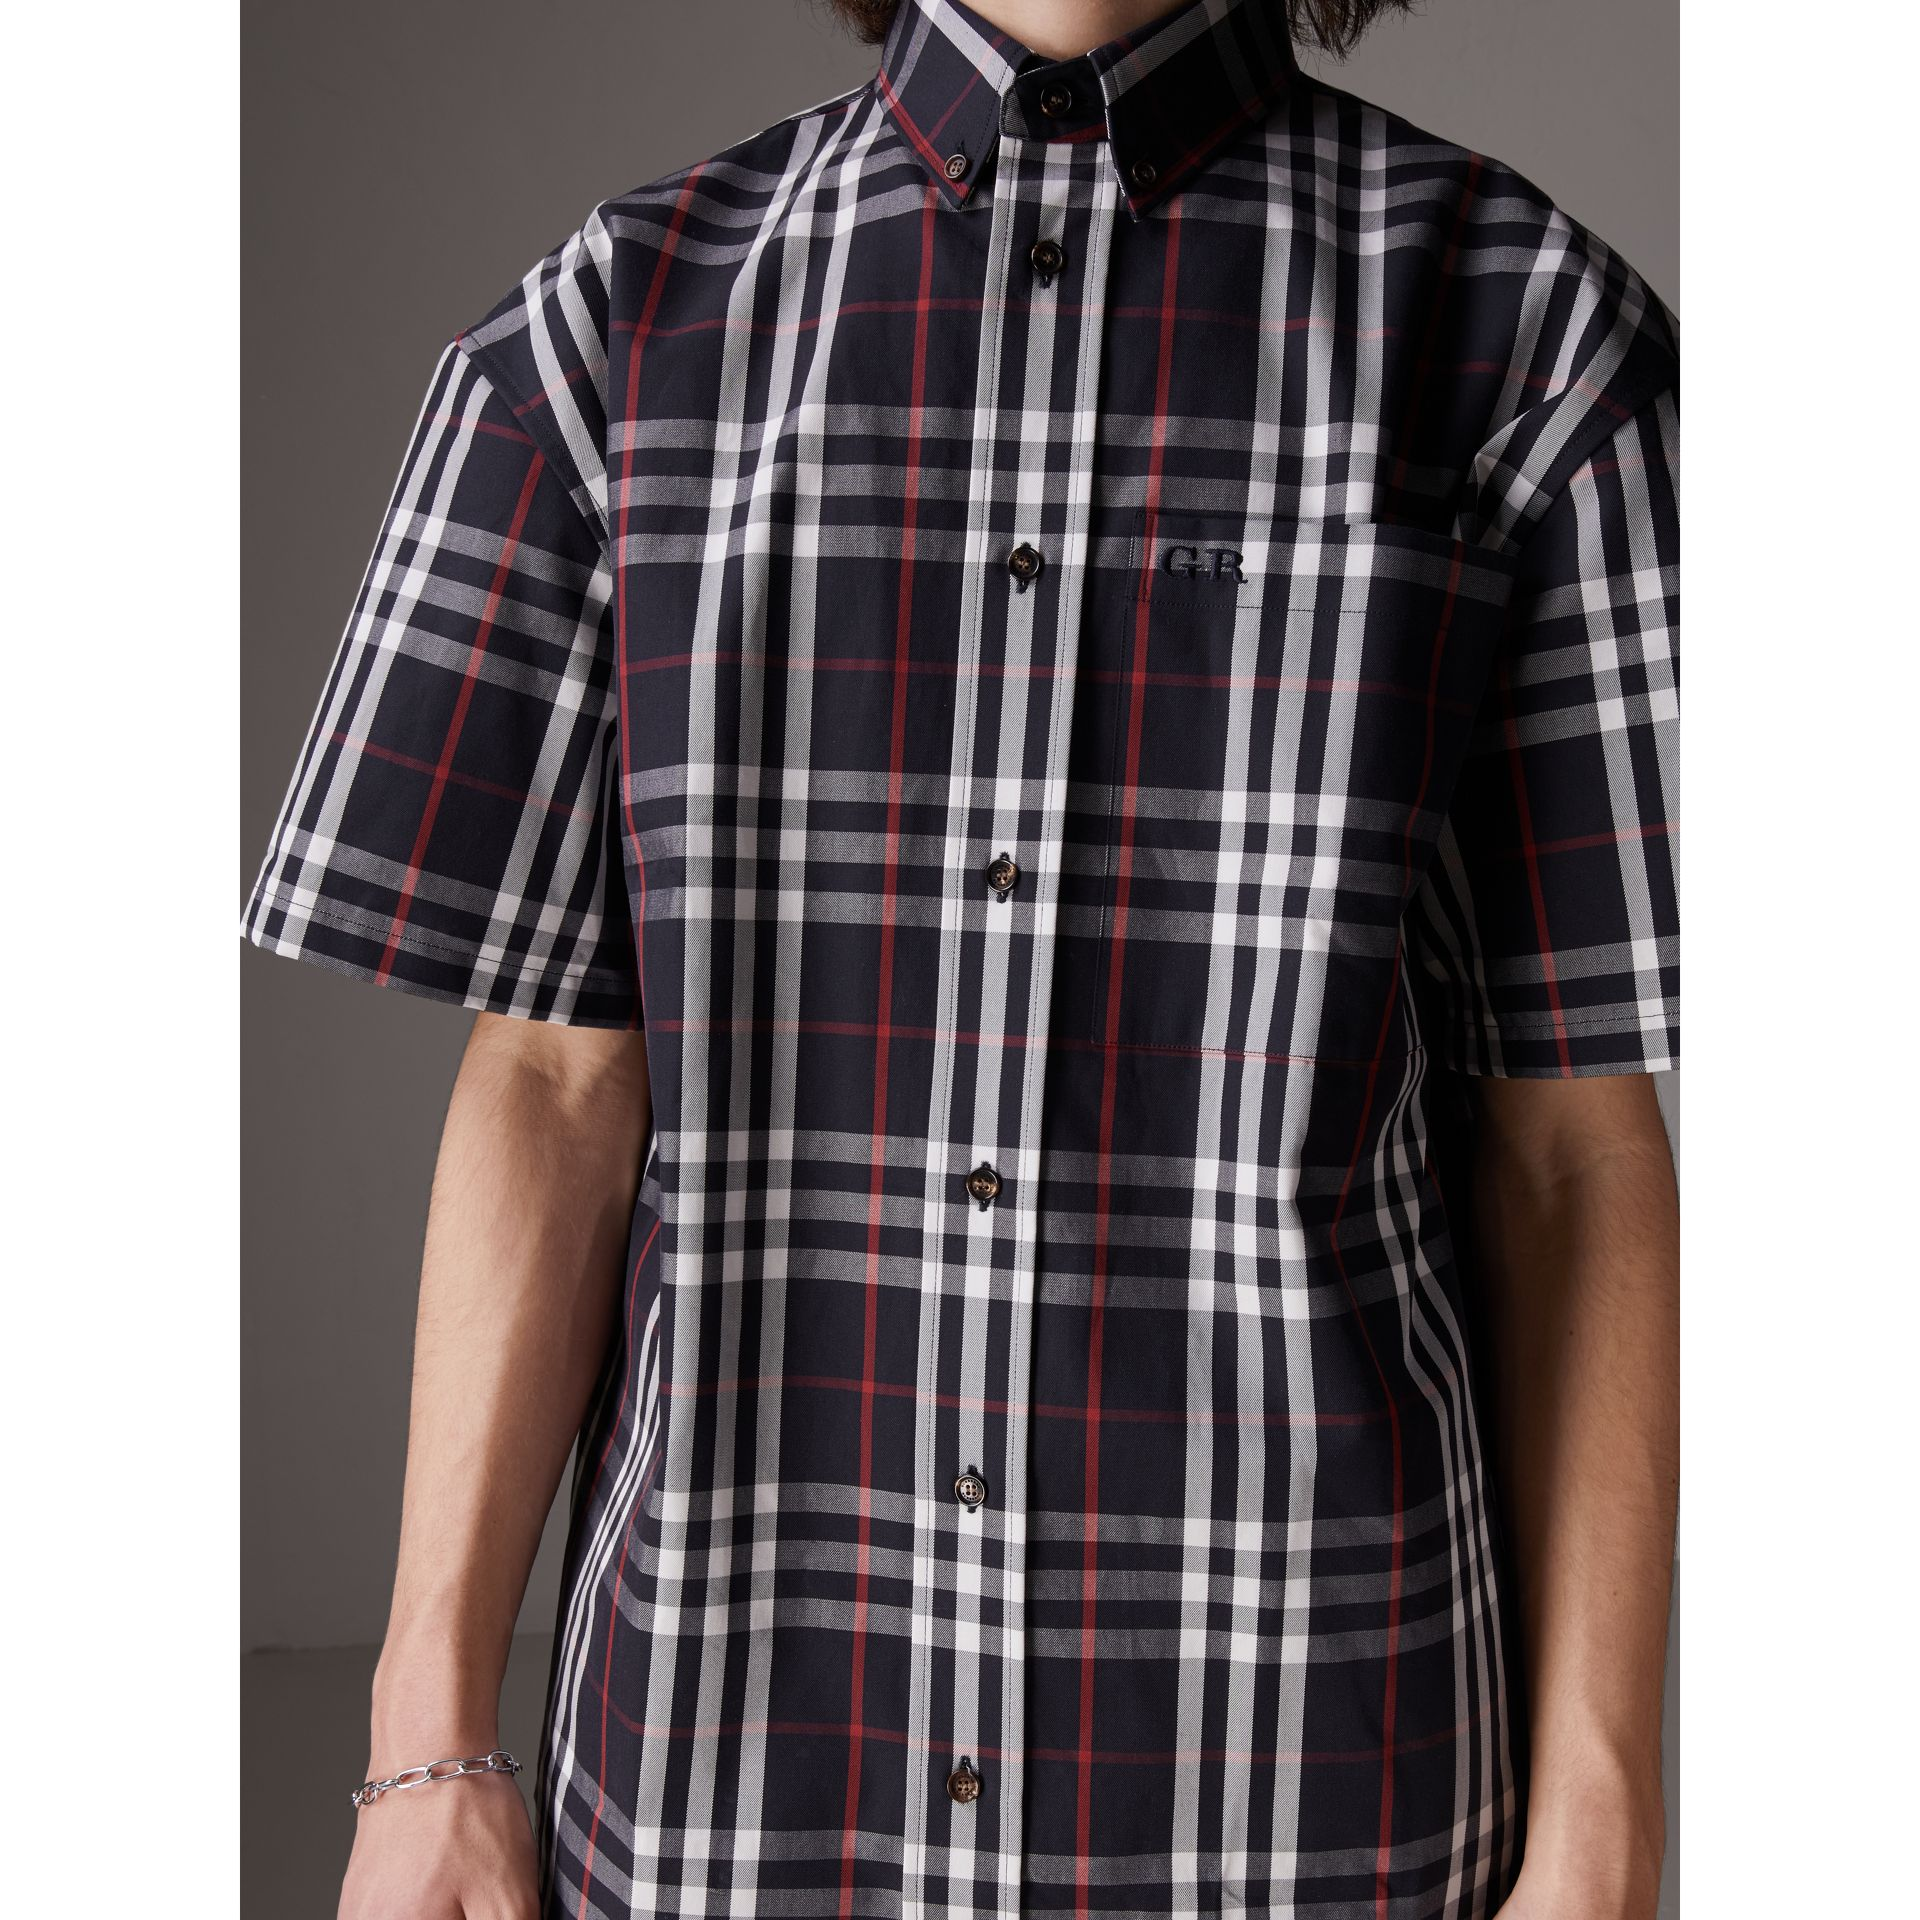 Gosha x Burberry Short-sleeve Check Shirt in Navy | Burberry - gallery image 1